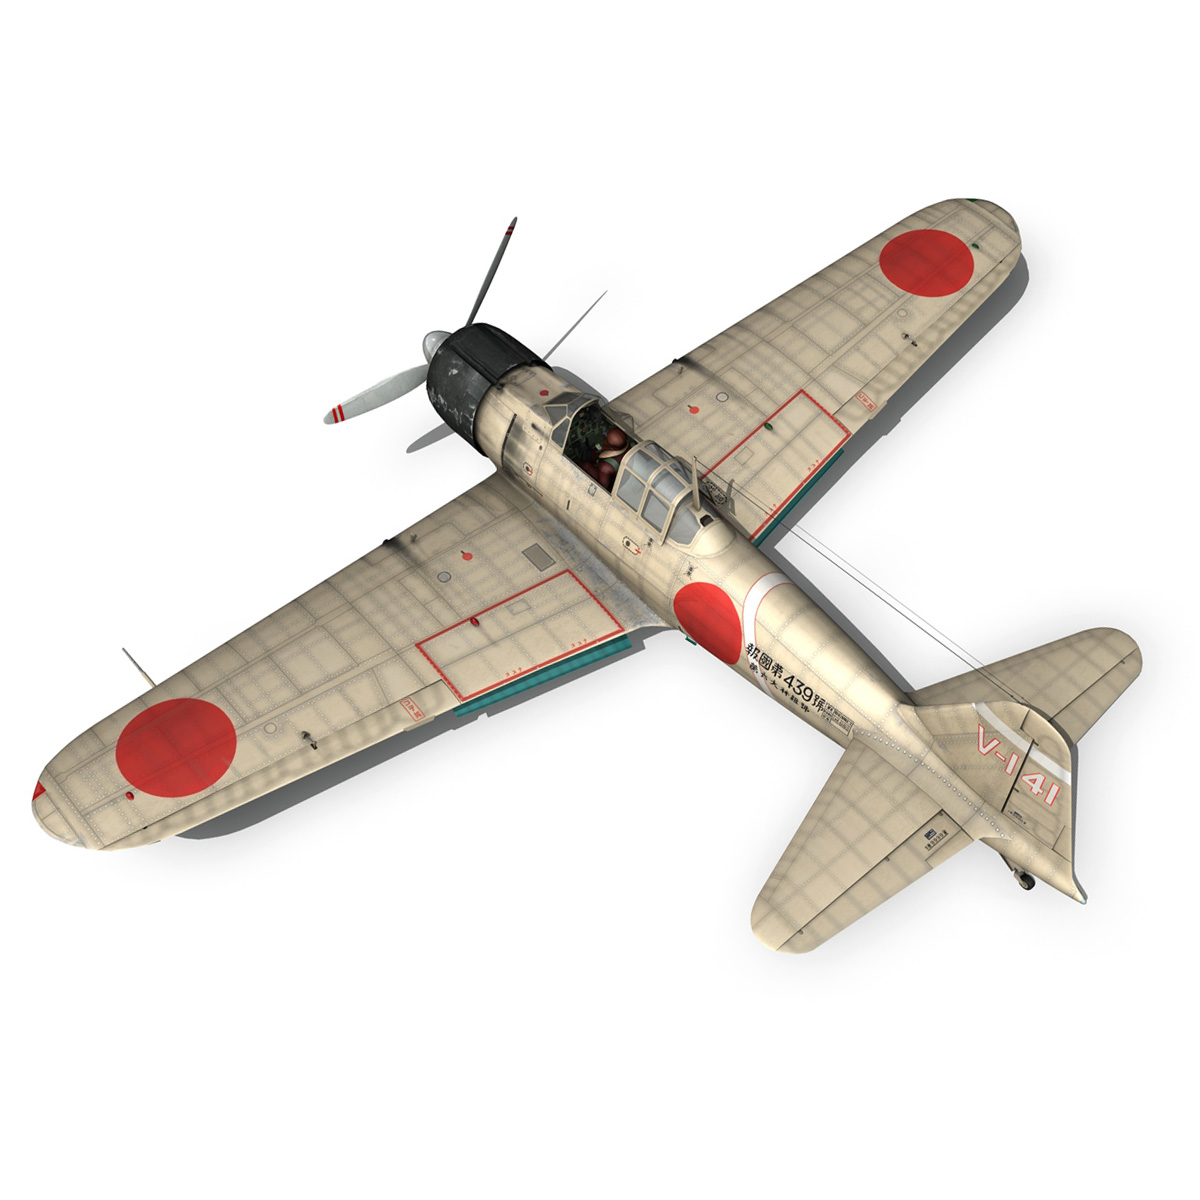 mitsubishi a6m2 zero – tainan air group 3d model fbx lwo obj 272719